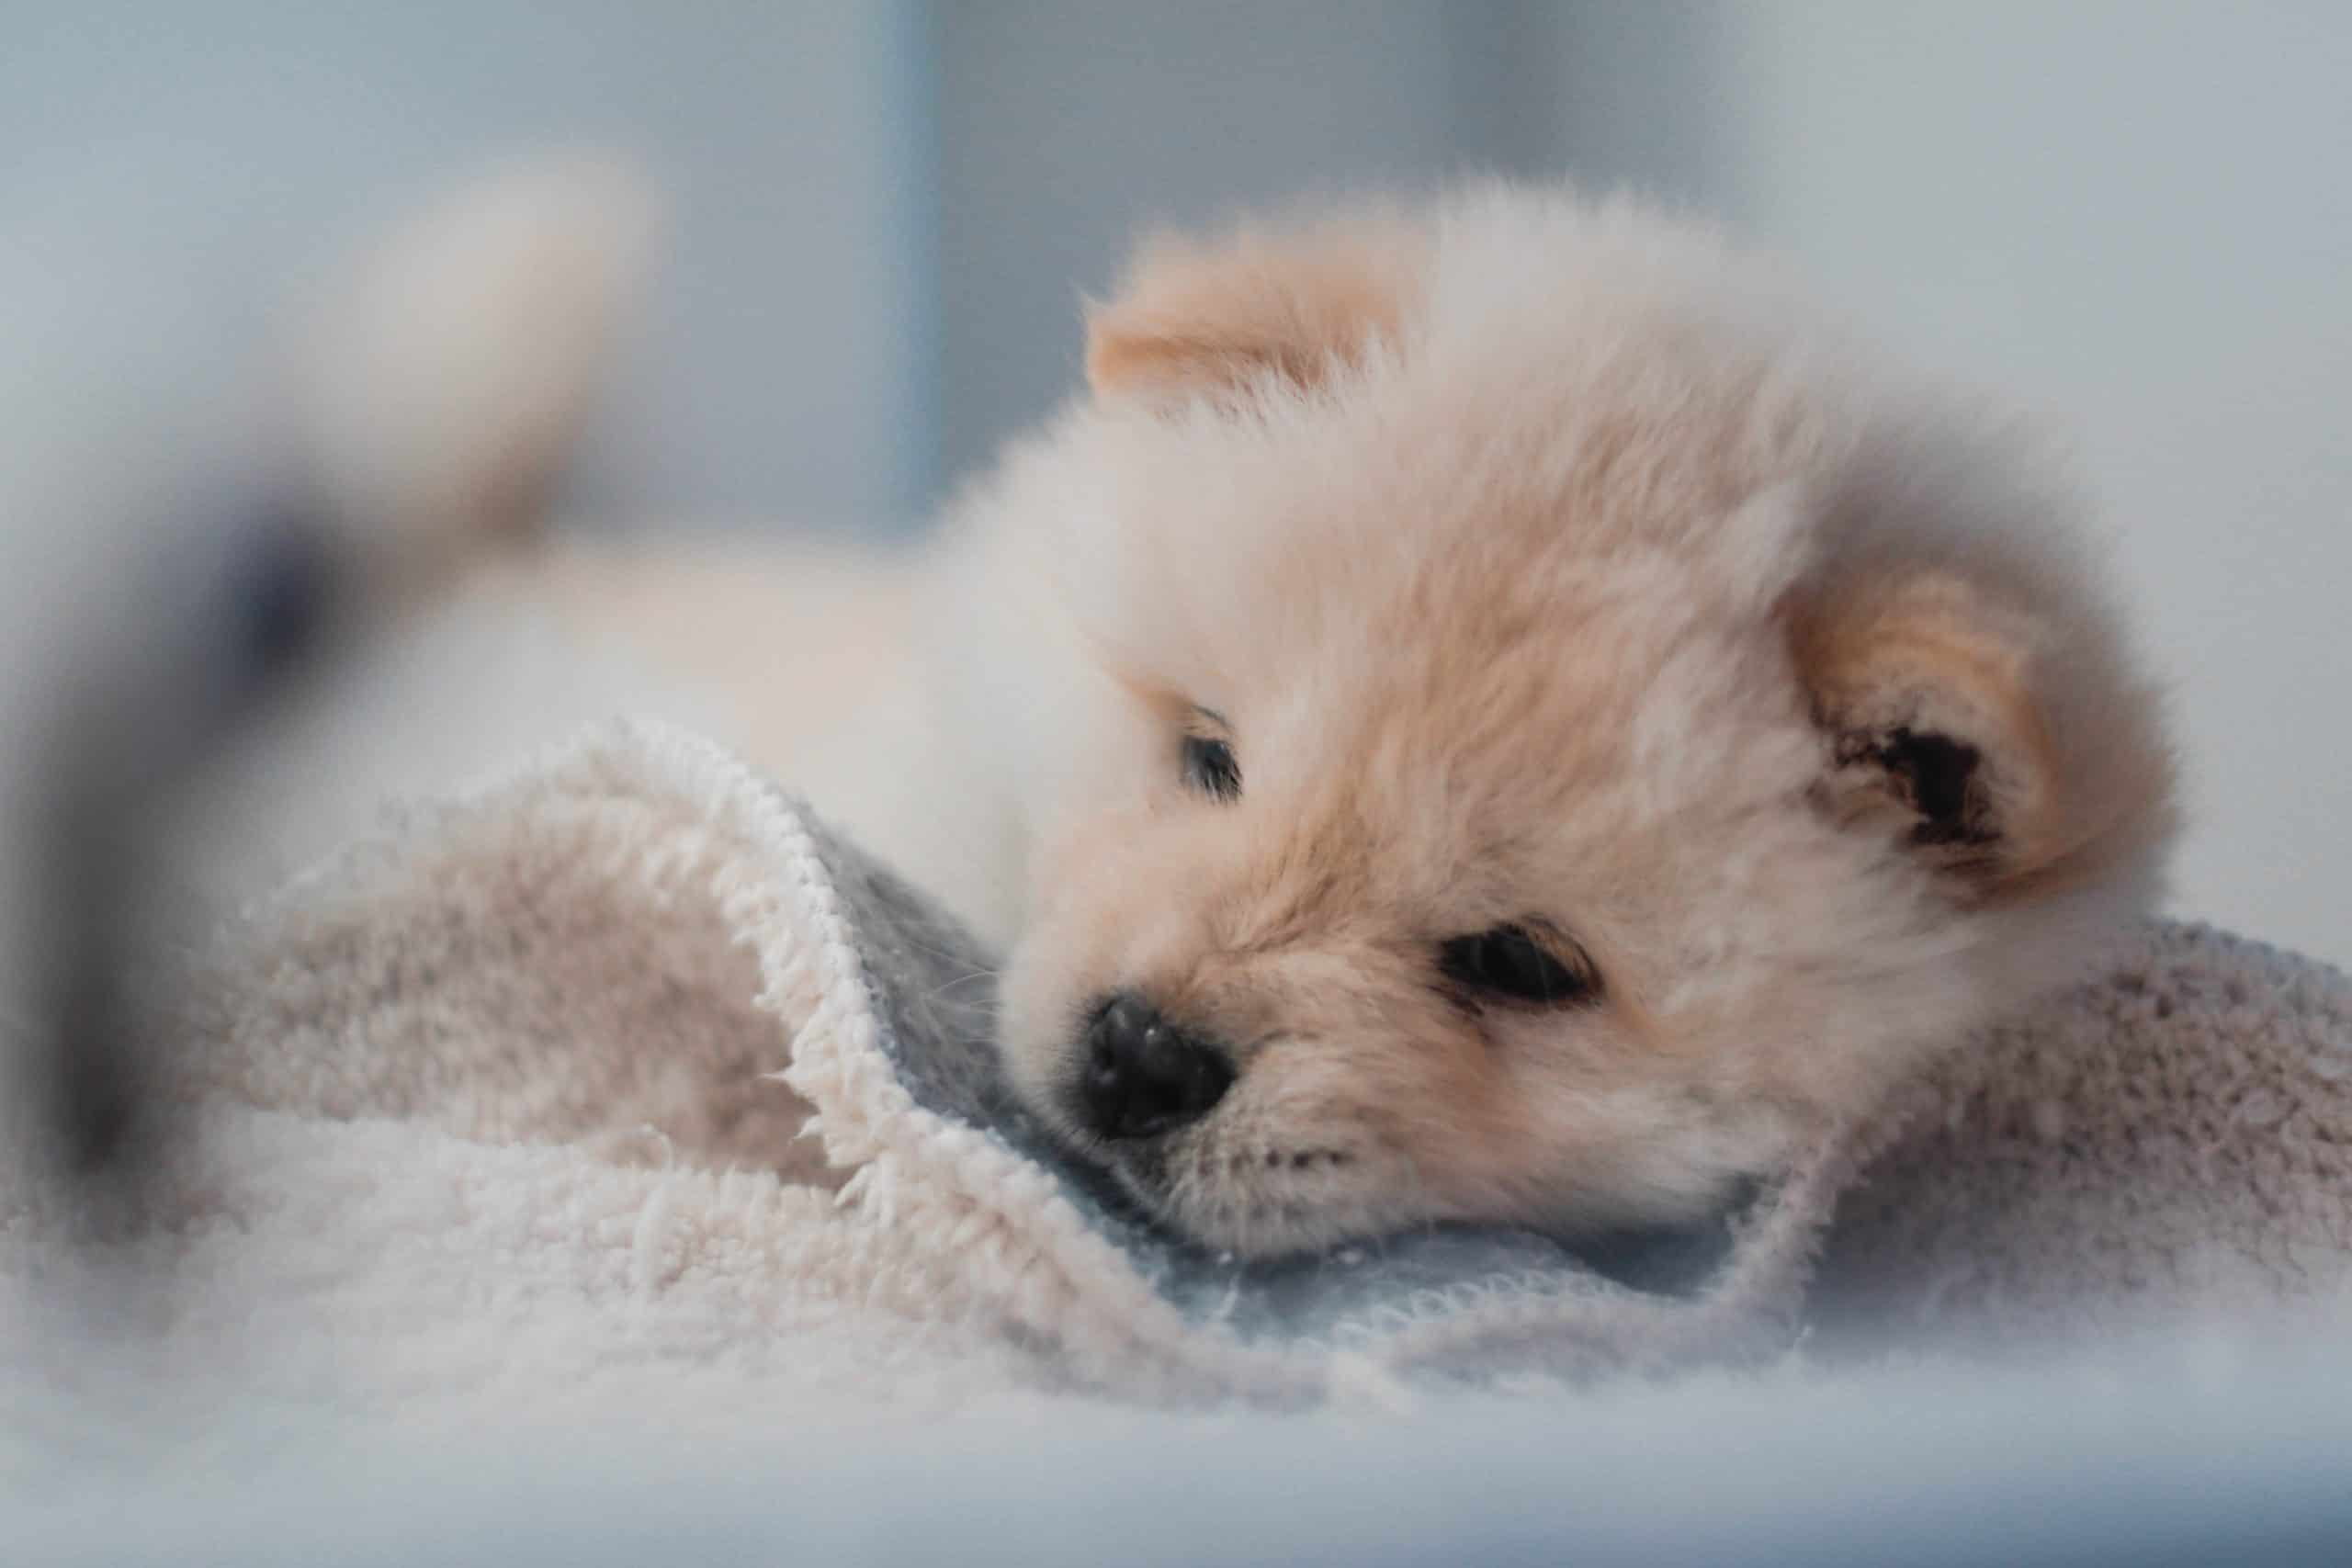 6 Week Old Puppy Care: How to Take Care of Your Puppy?